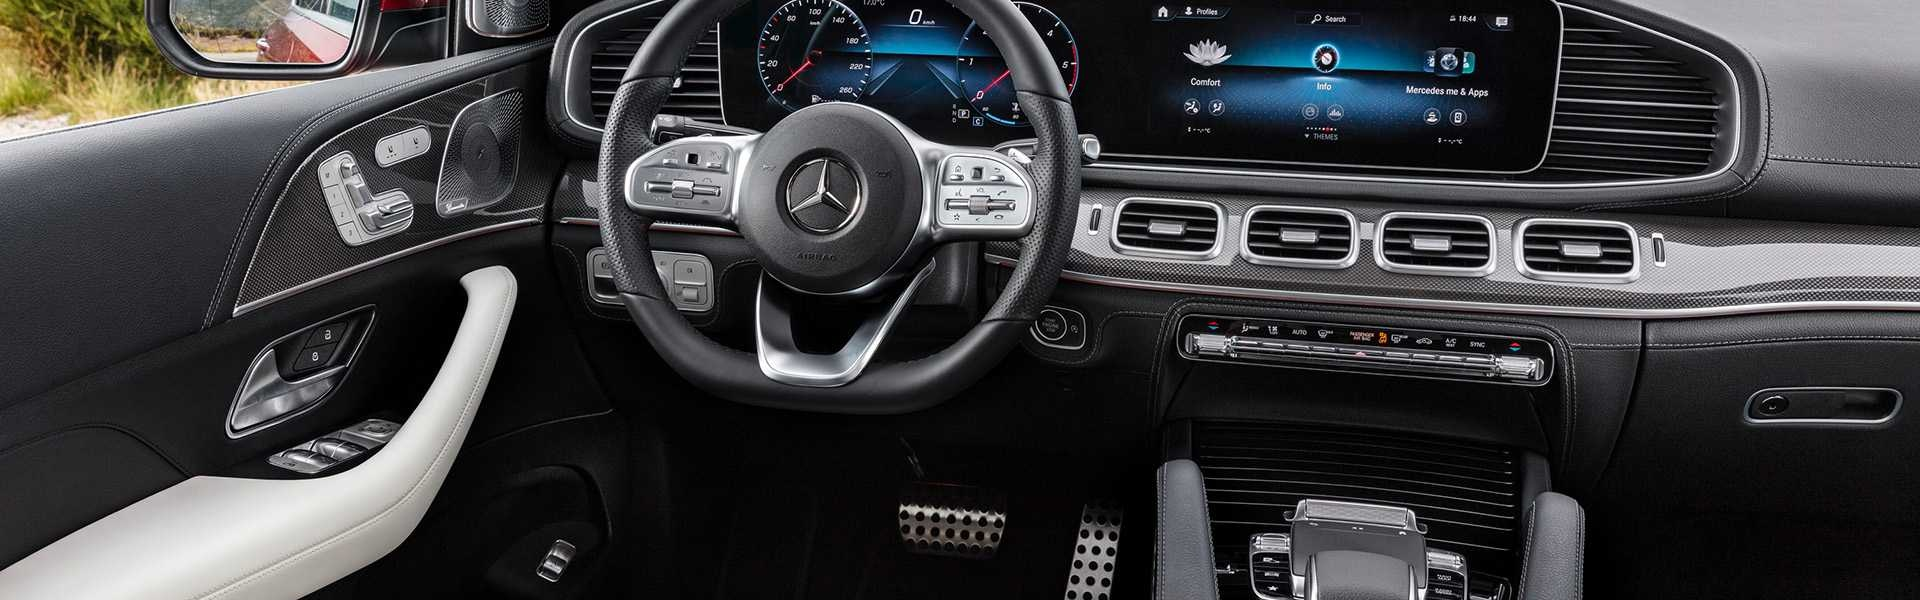 mercedes-gle-coupe-2019 (6).jpg